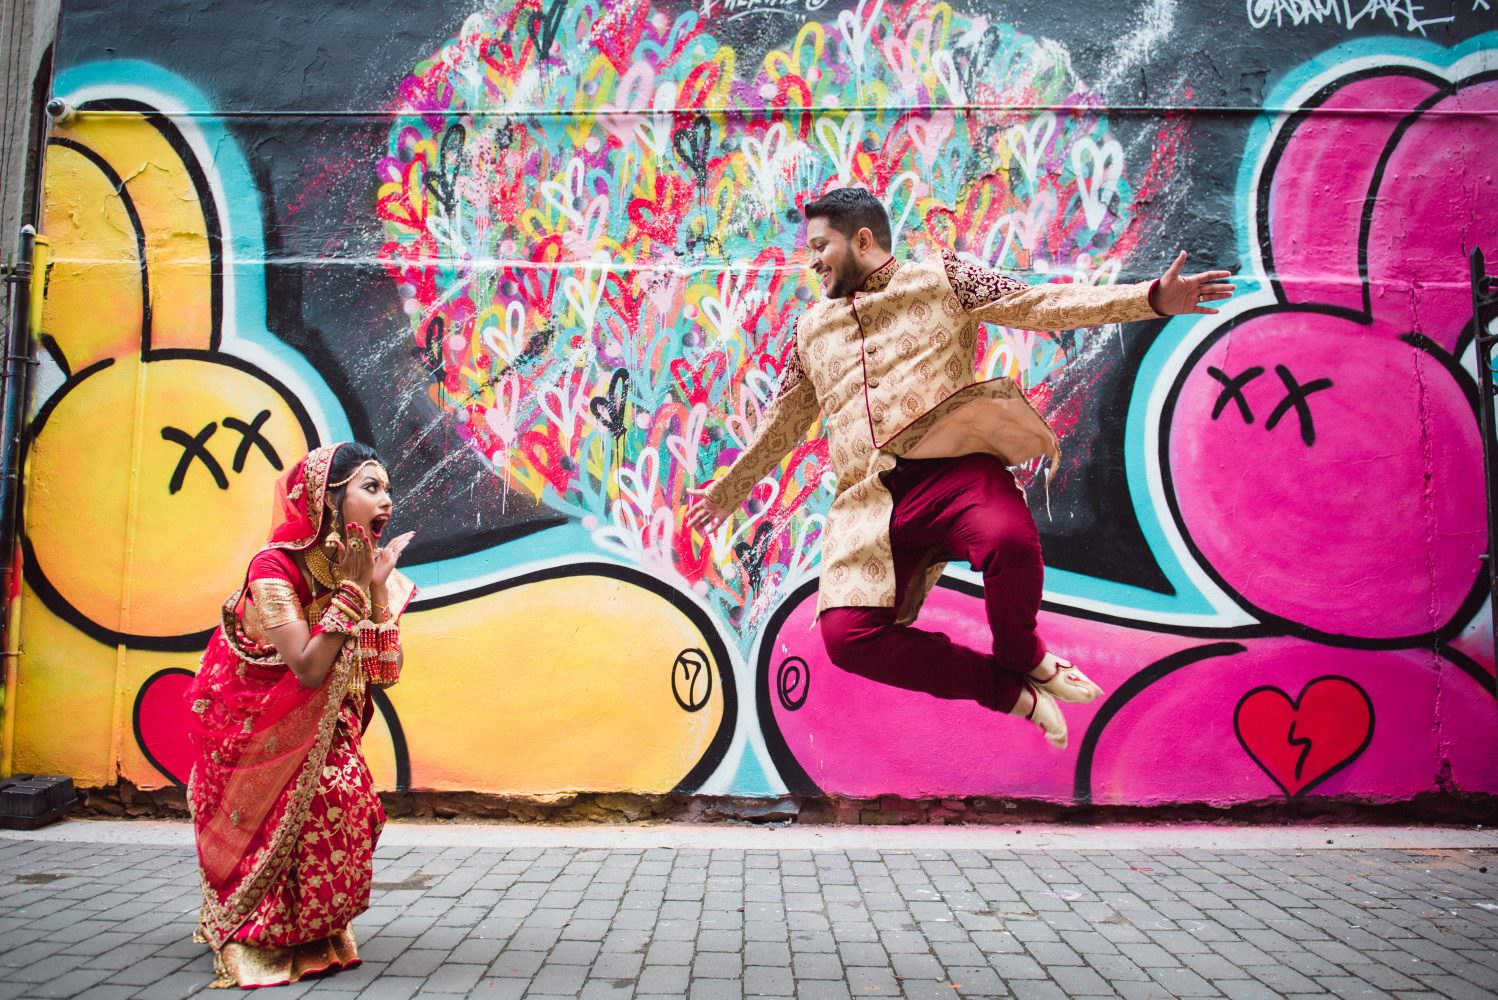 Bride and groom jumping next to a Graffiti on a wall